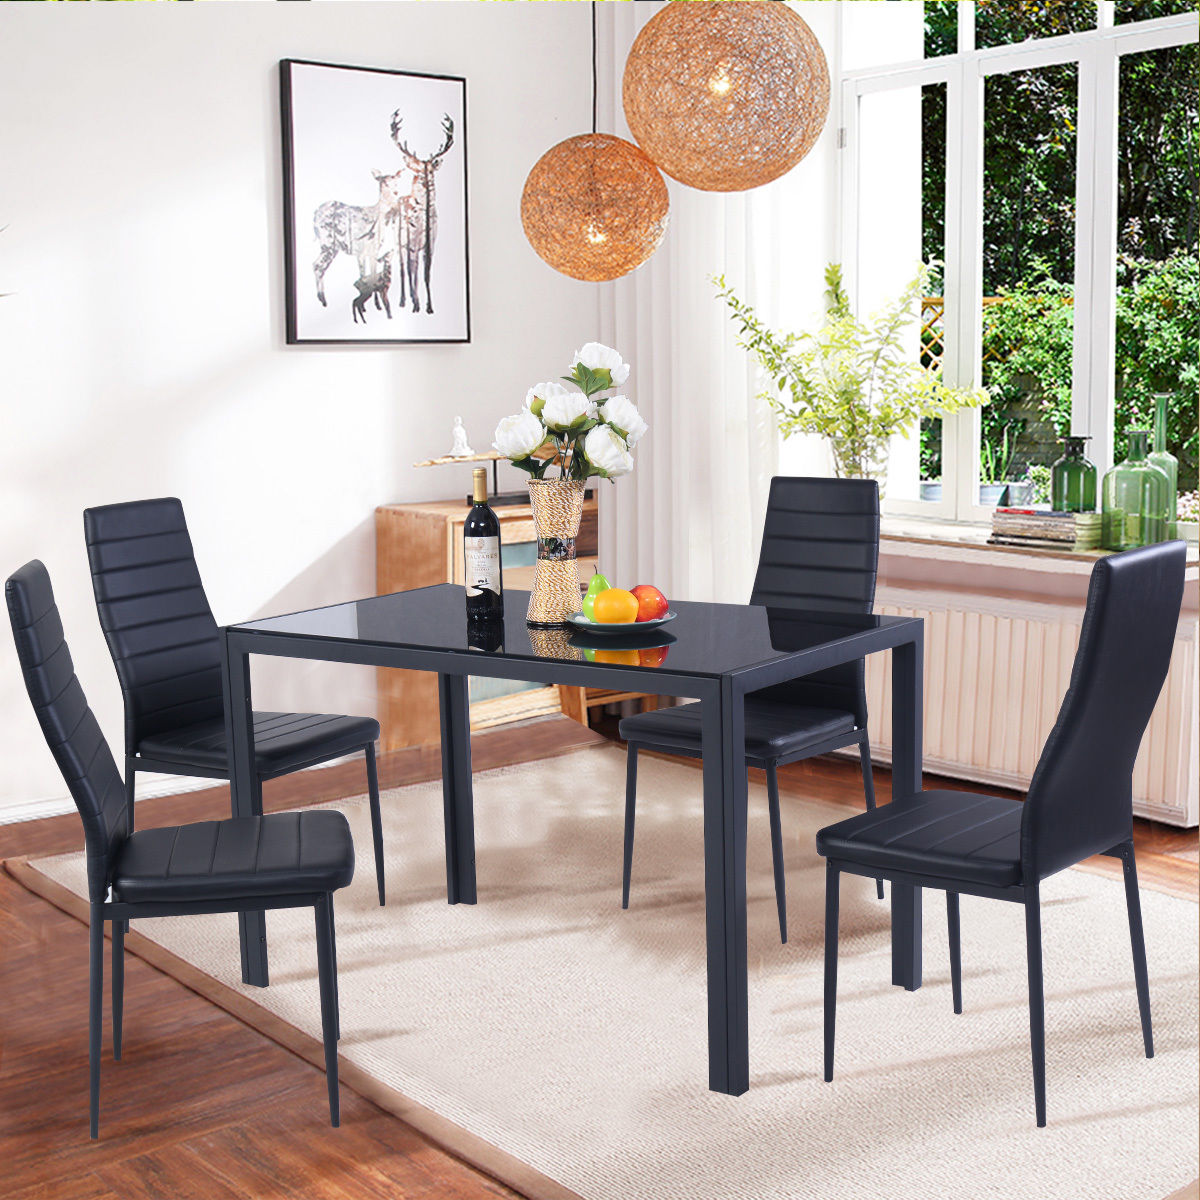 small kitchen table and chairs set big tall dining room costway 5 piece glass metal 4 breakfast furniture walmart com